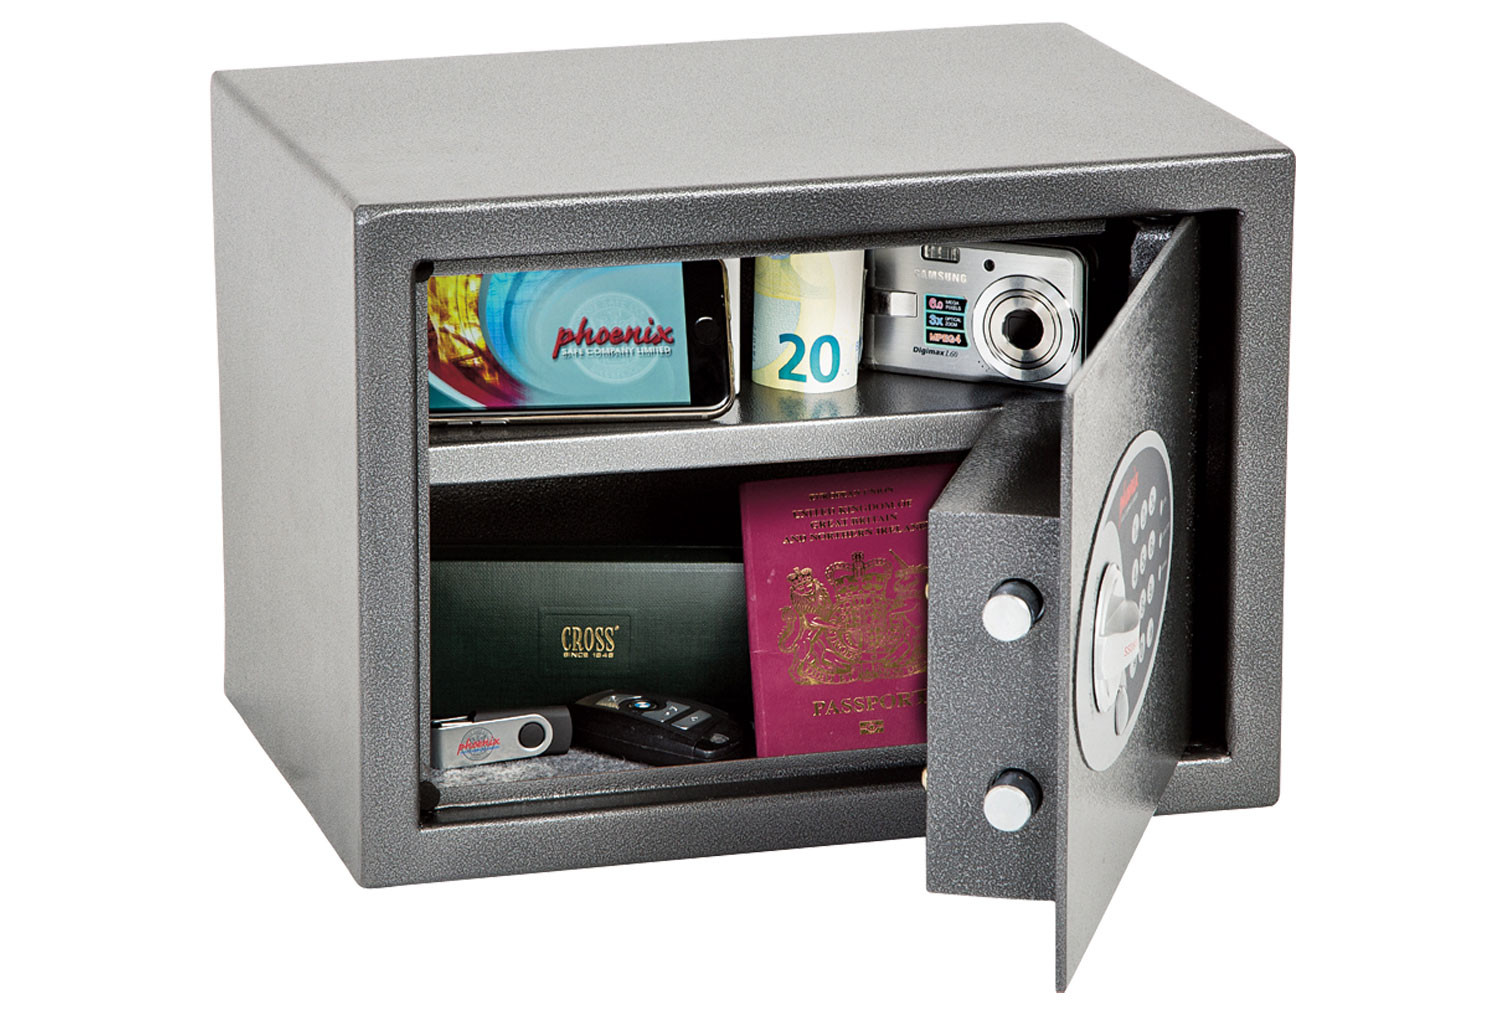 Phoenix Dione SS0301E Hotel And Laptop Safe With Electronic Lock (16ltrs)